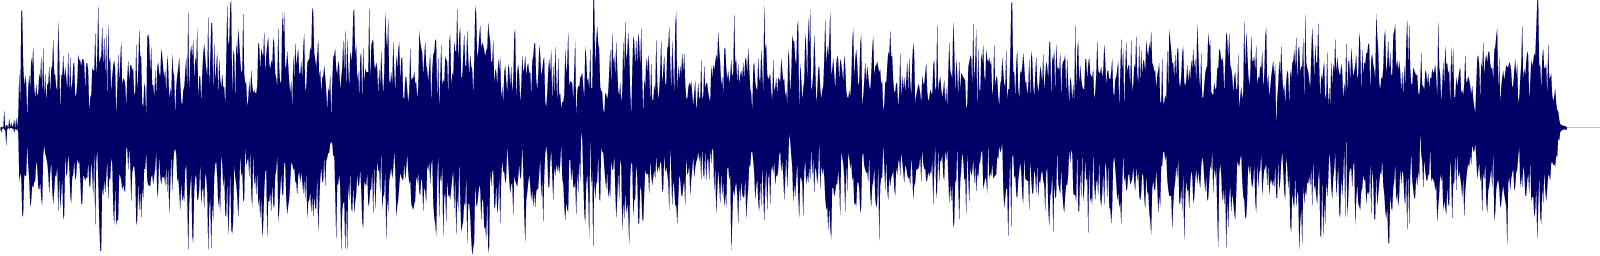 waveform of track #146500